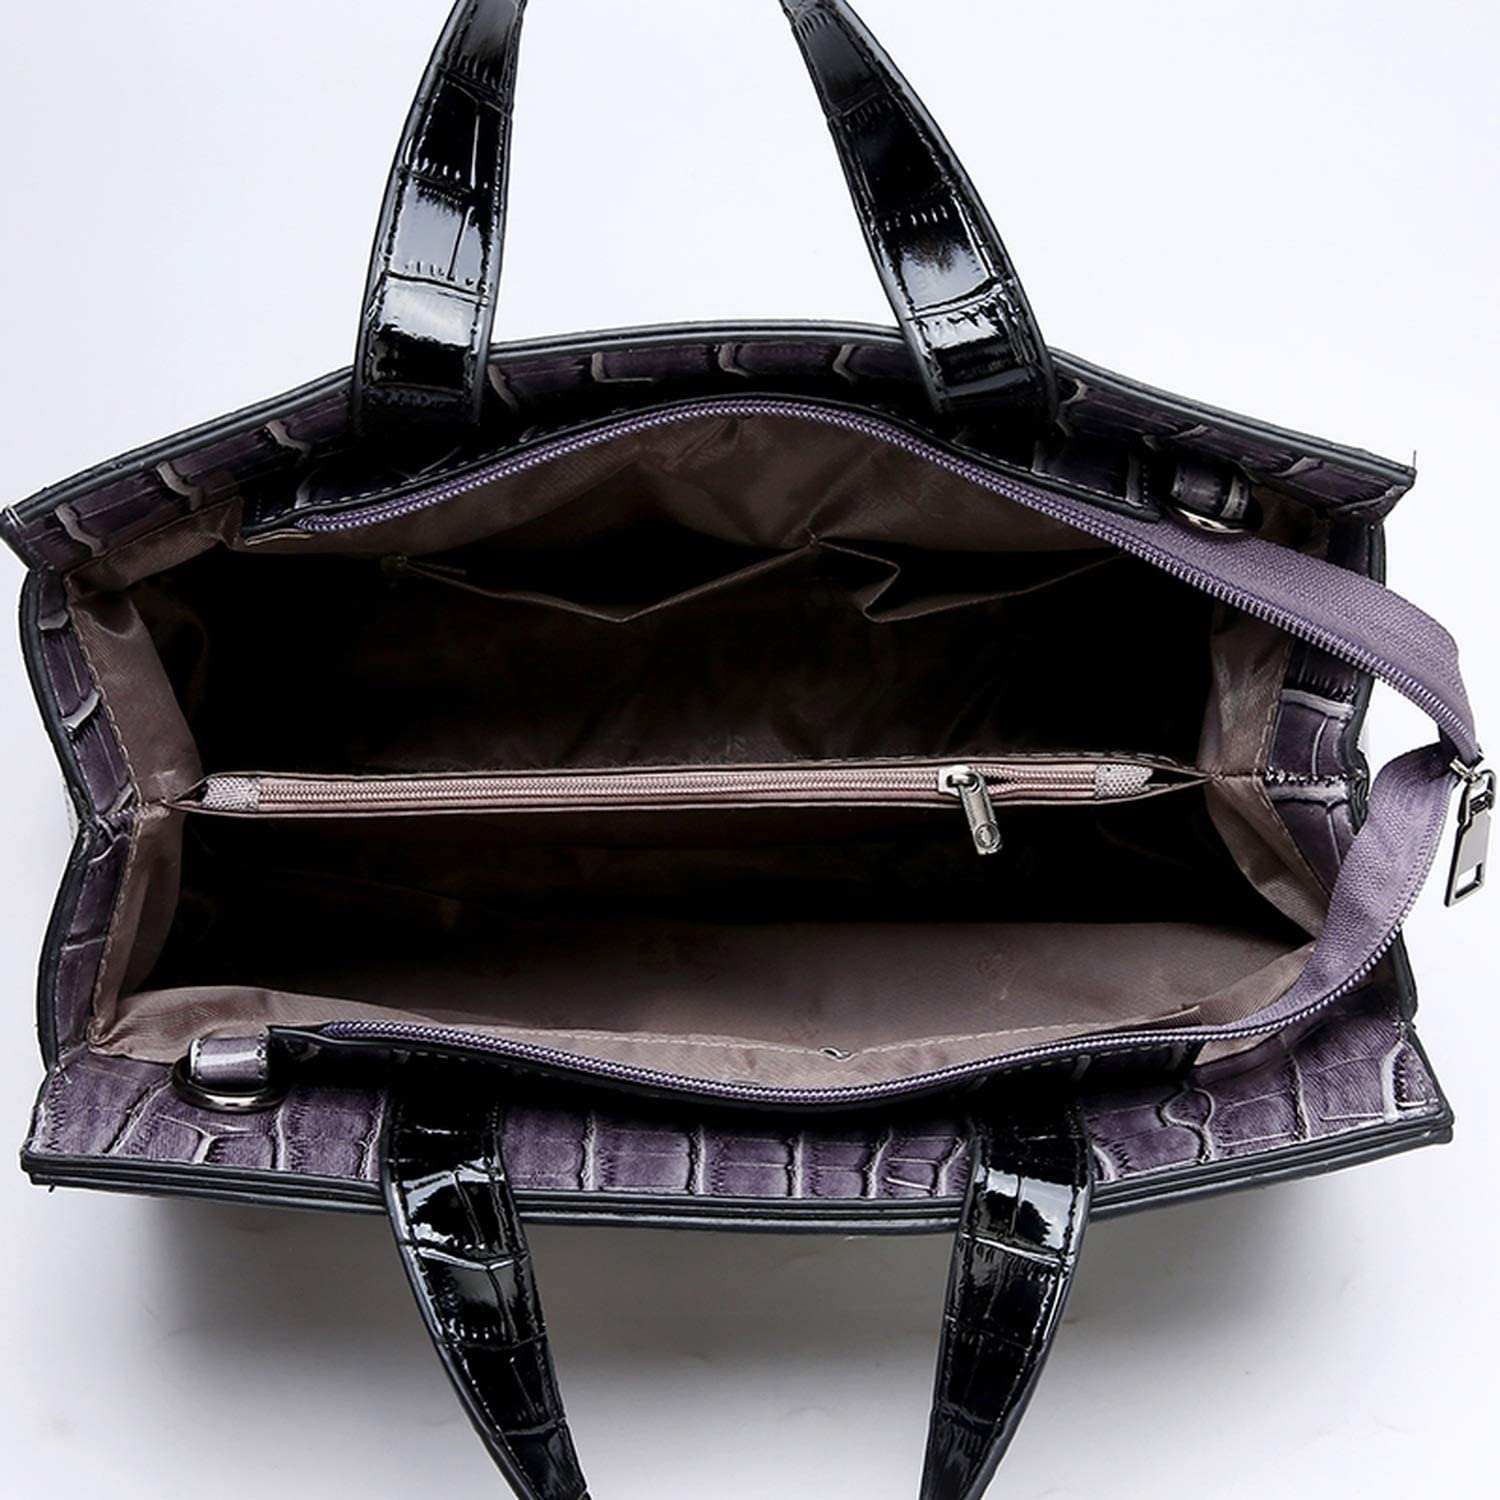 Small Patent Leather Handbag Laides Luxury Handags Designer Crossbody Bags Lacquered Bag